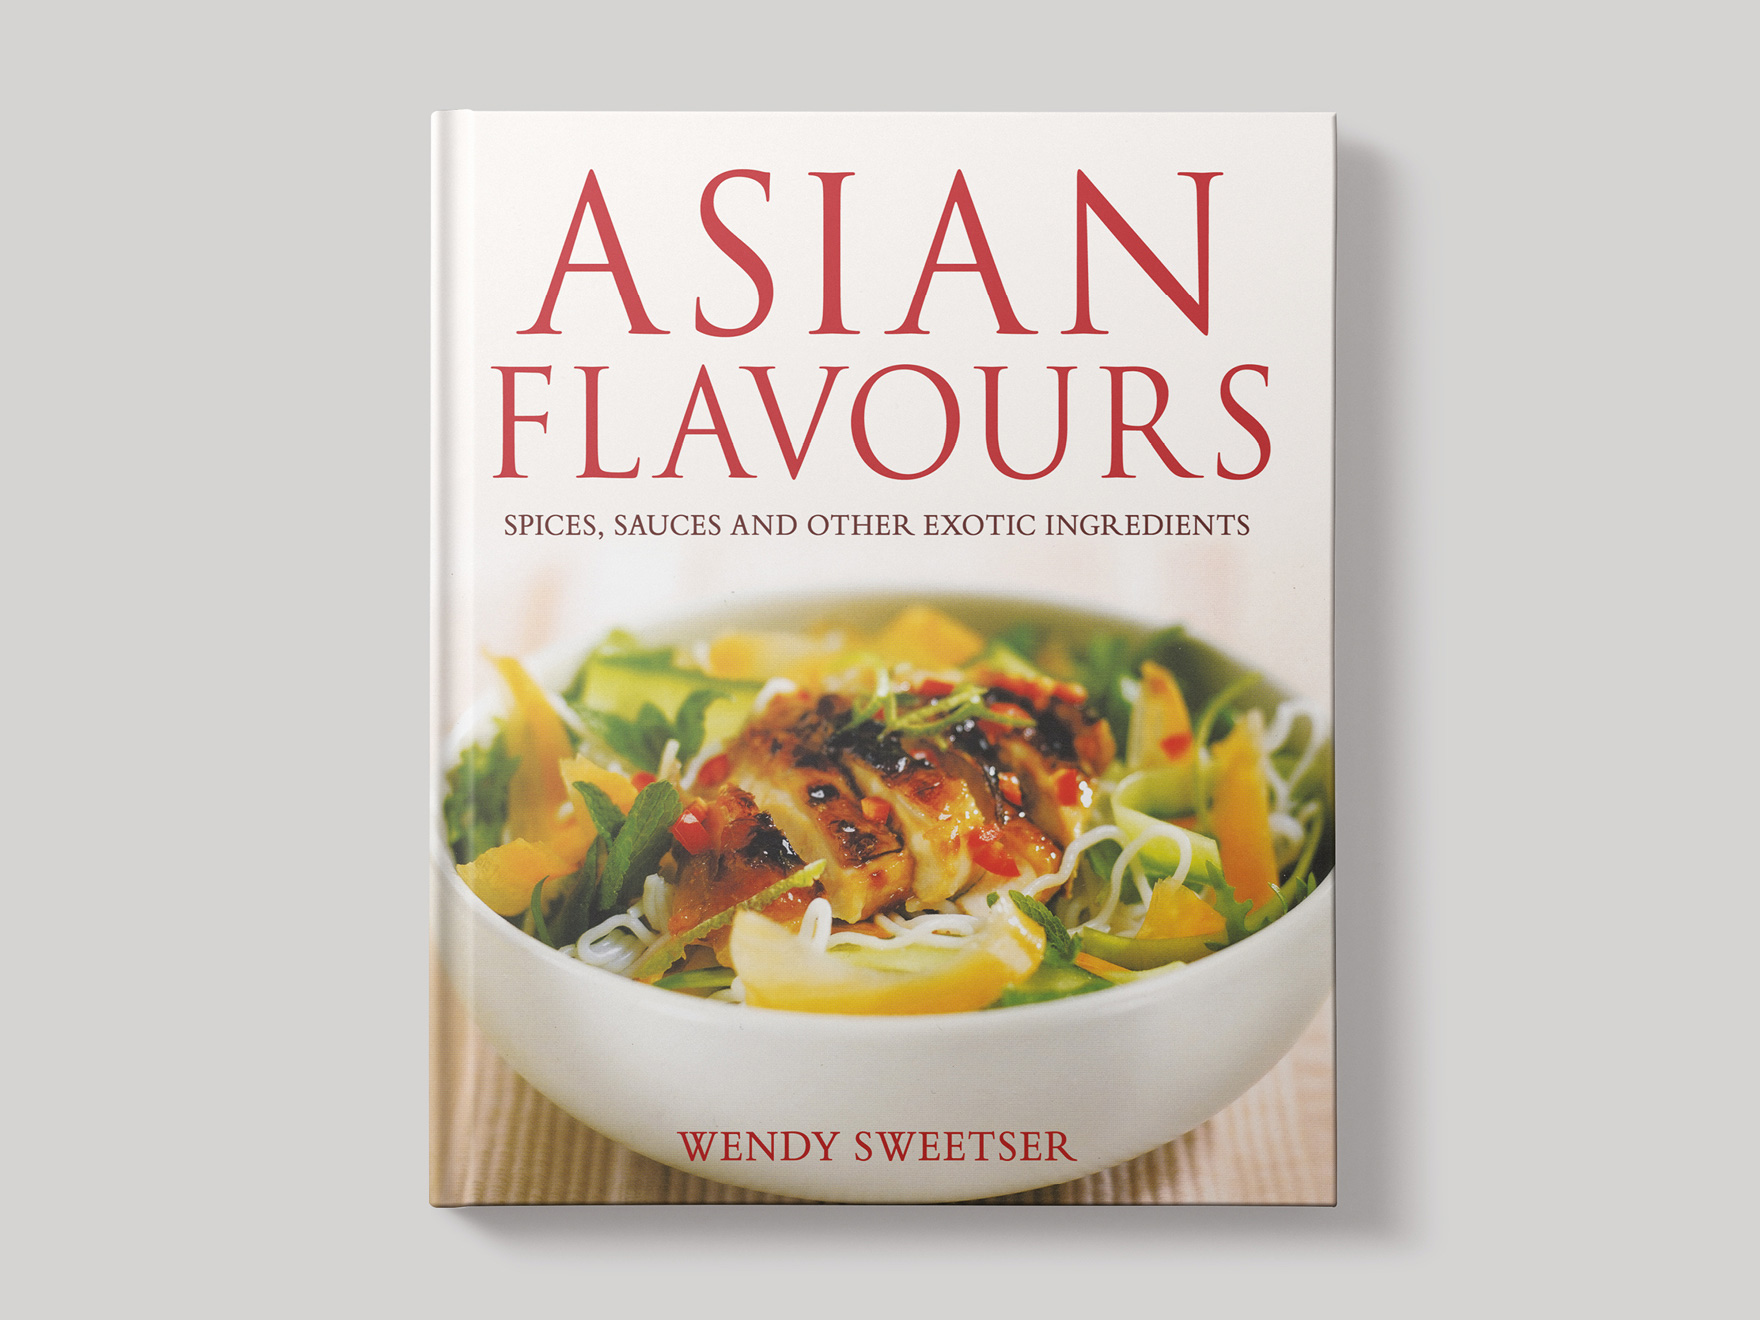 Book cover to Asian Flavours recipe book featuring a chicken and noodle dish